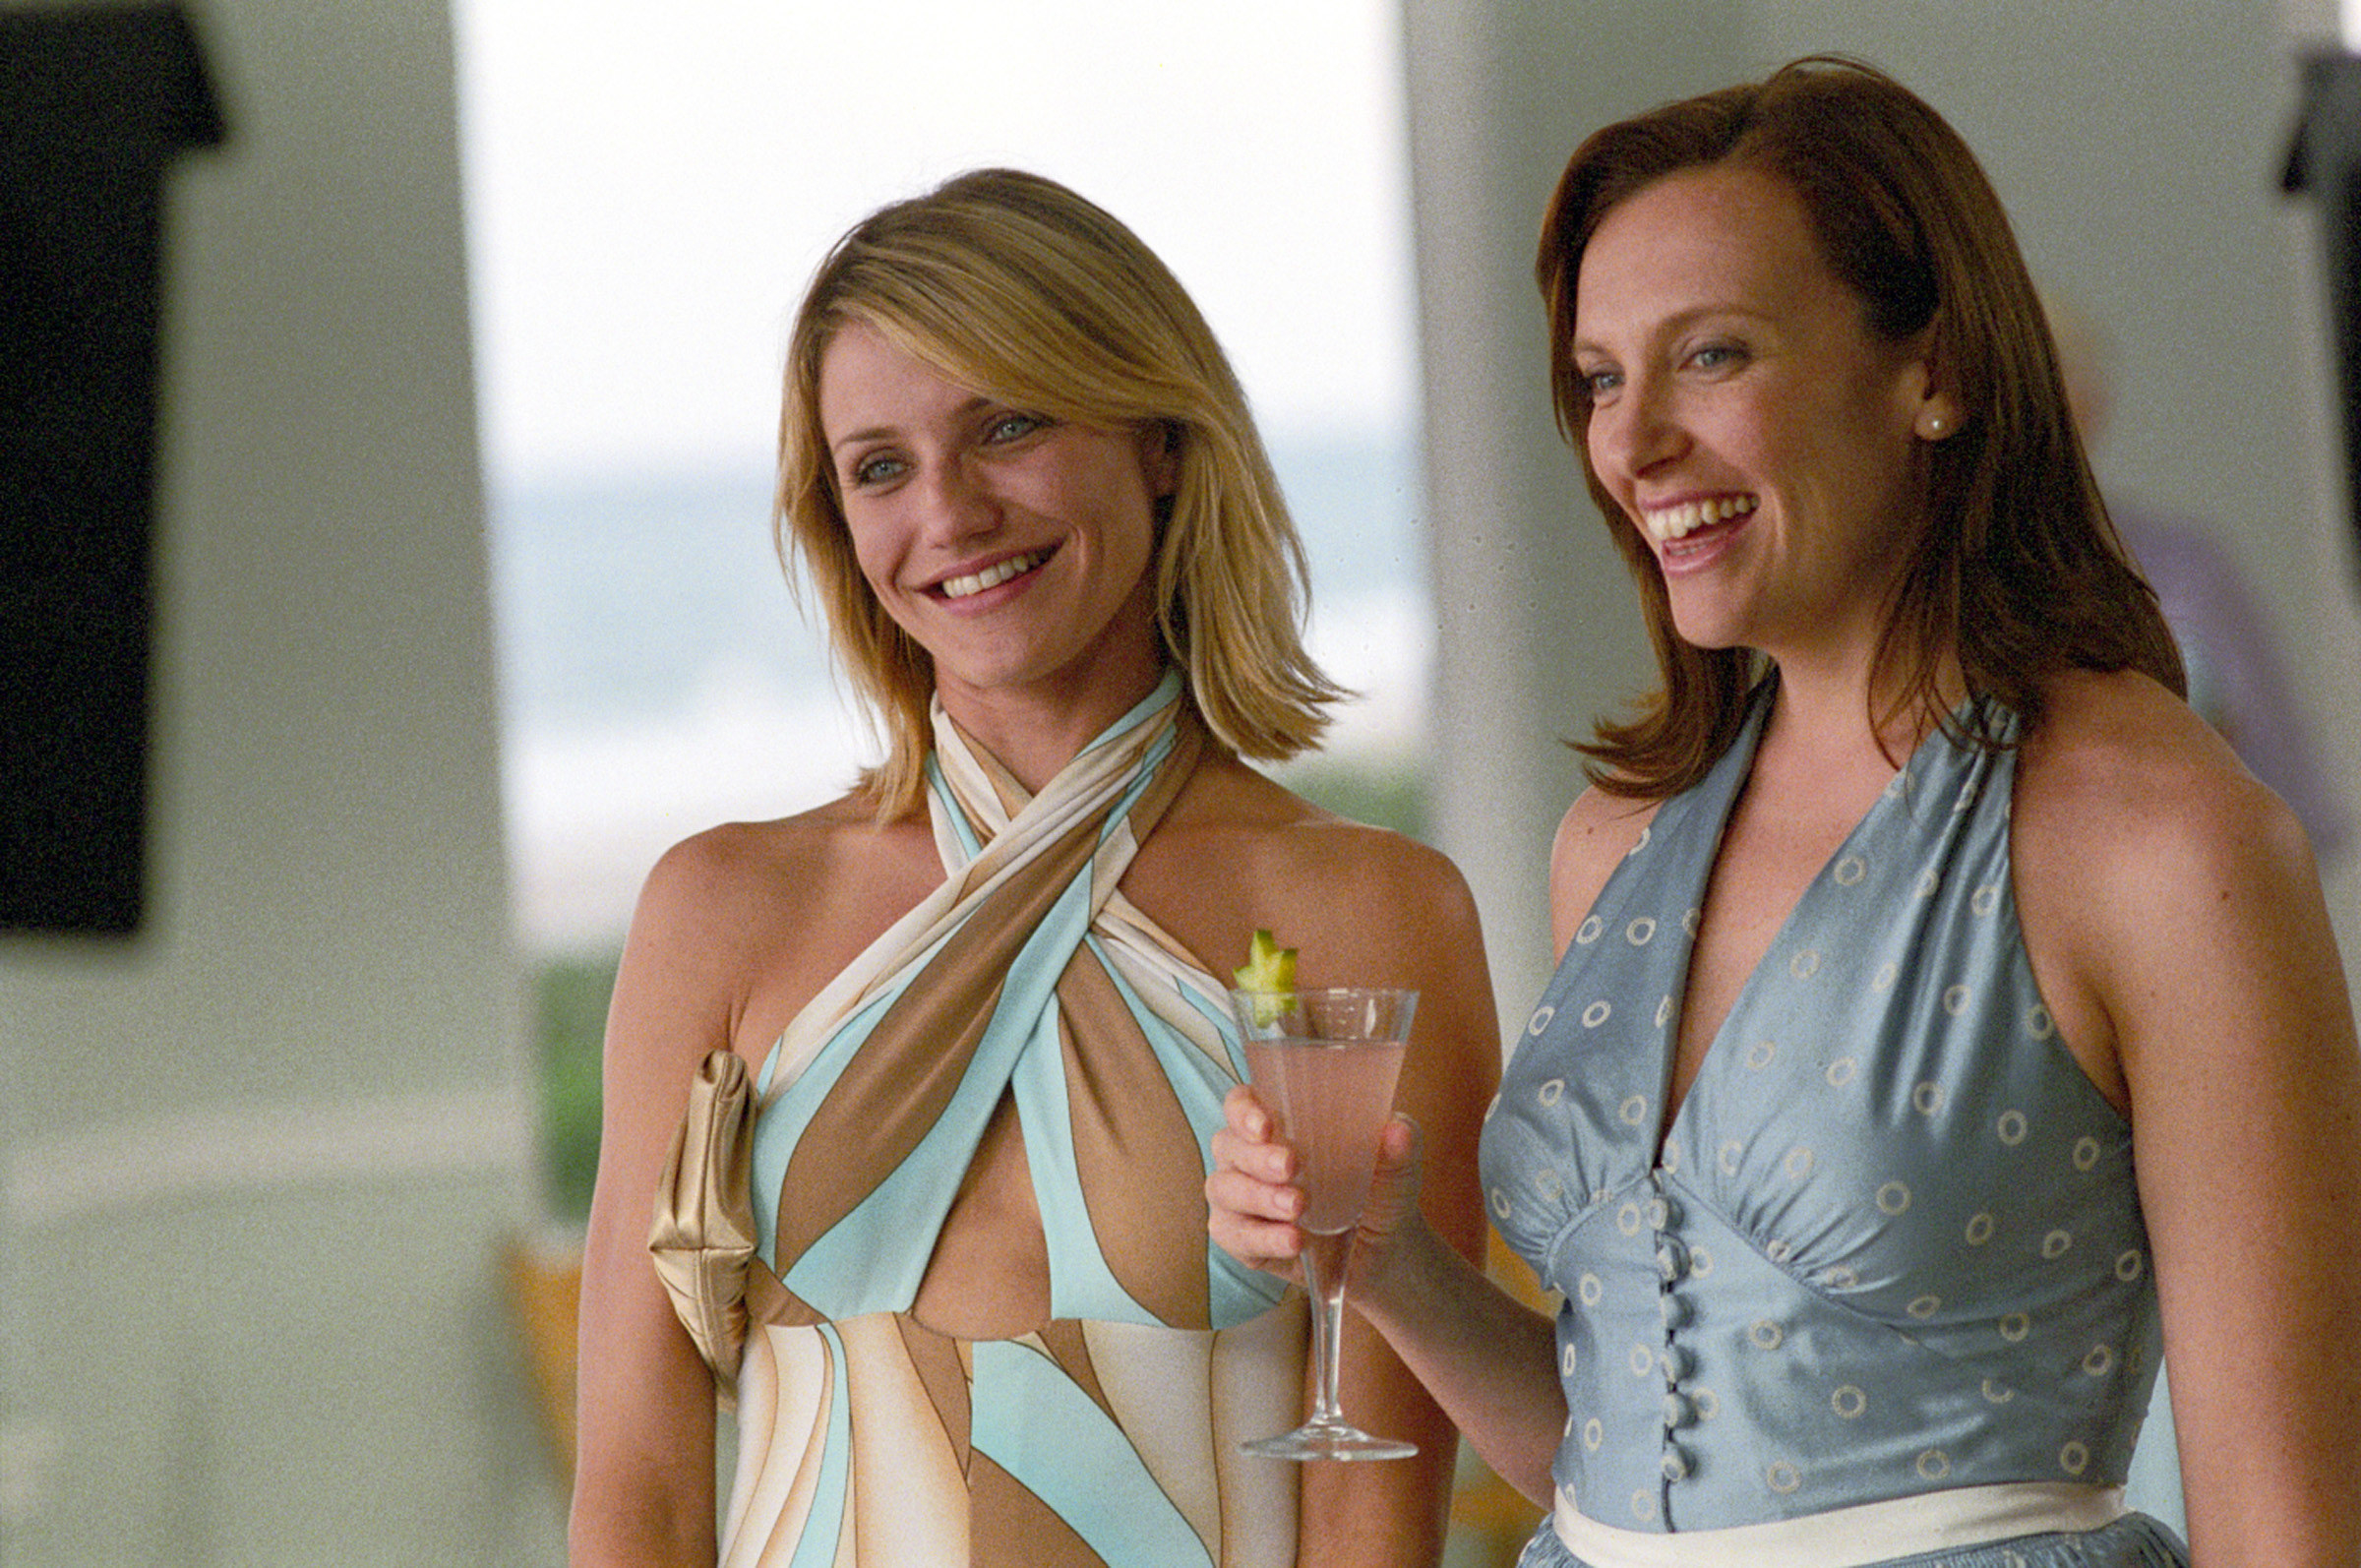 Cameron Diaz and Toni Collette hold drinks at a party